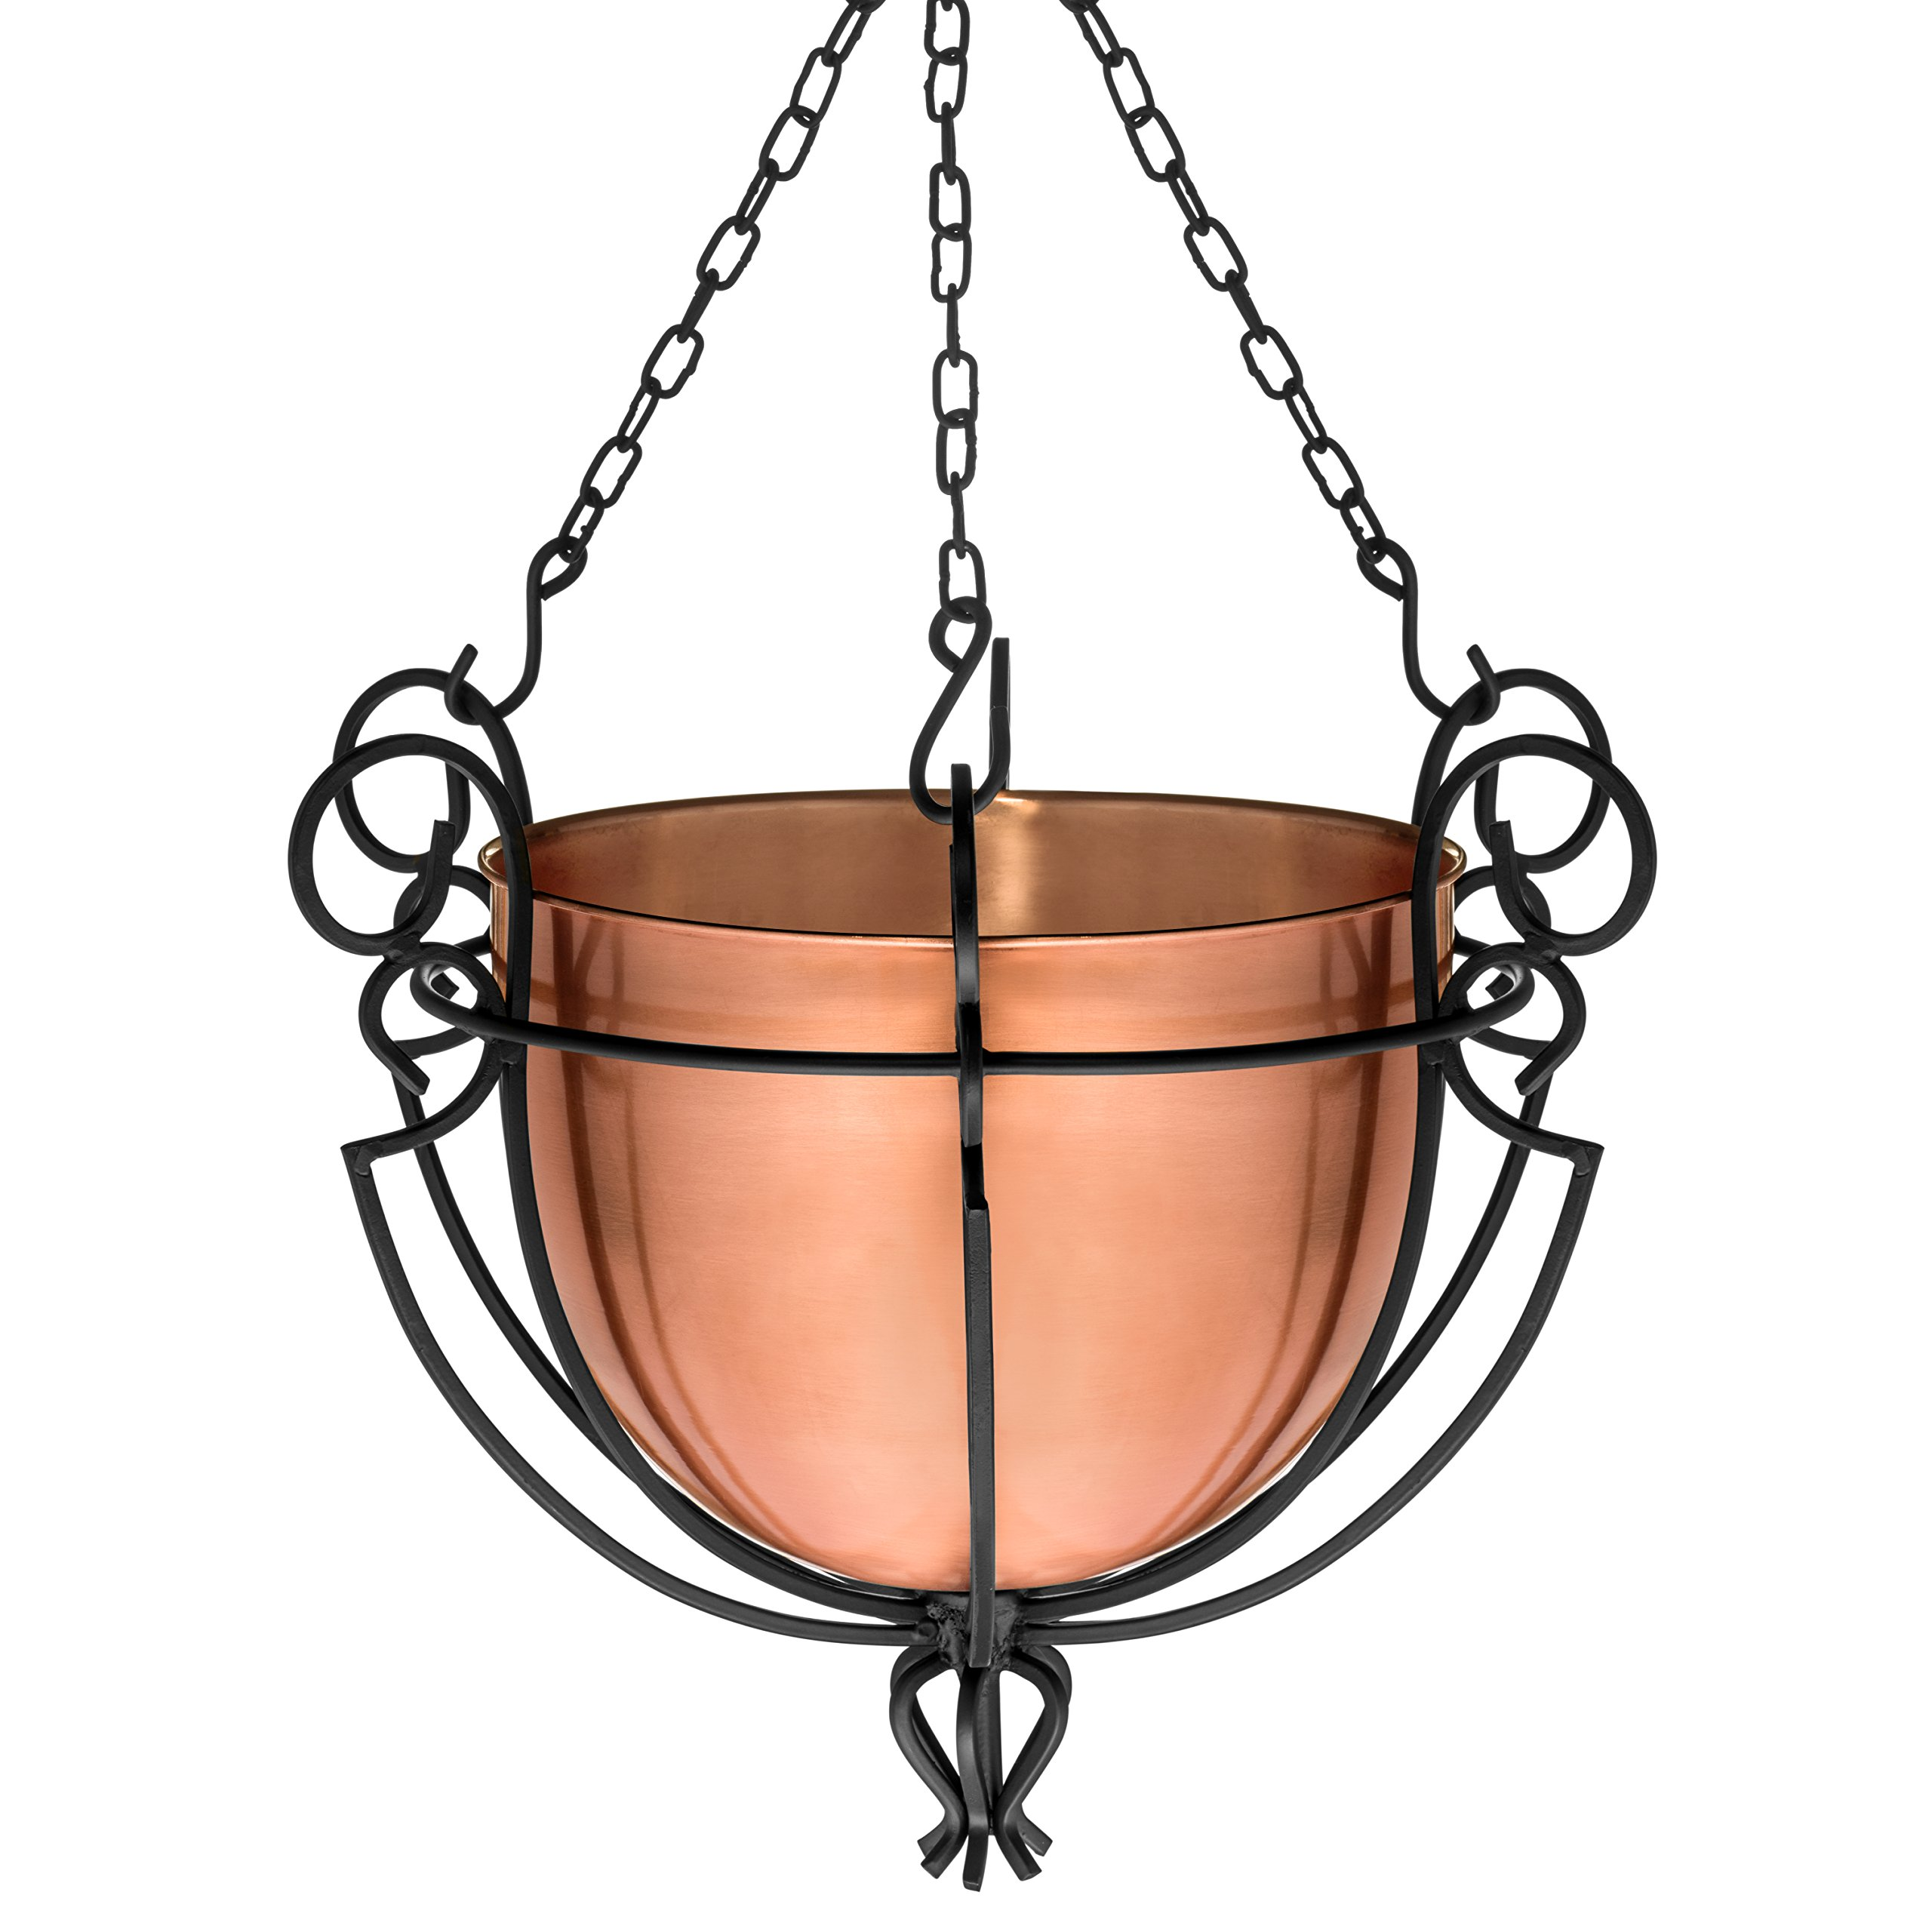 H Potter Hanging Copper Patio Garden Flower Planter Basket by H Potter (Image #1)